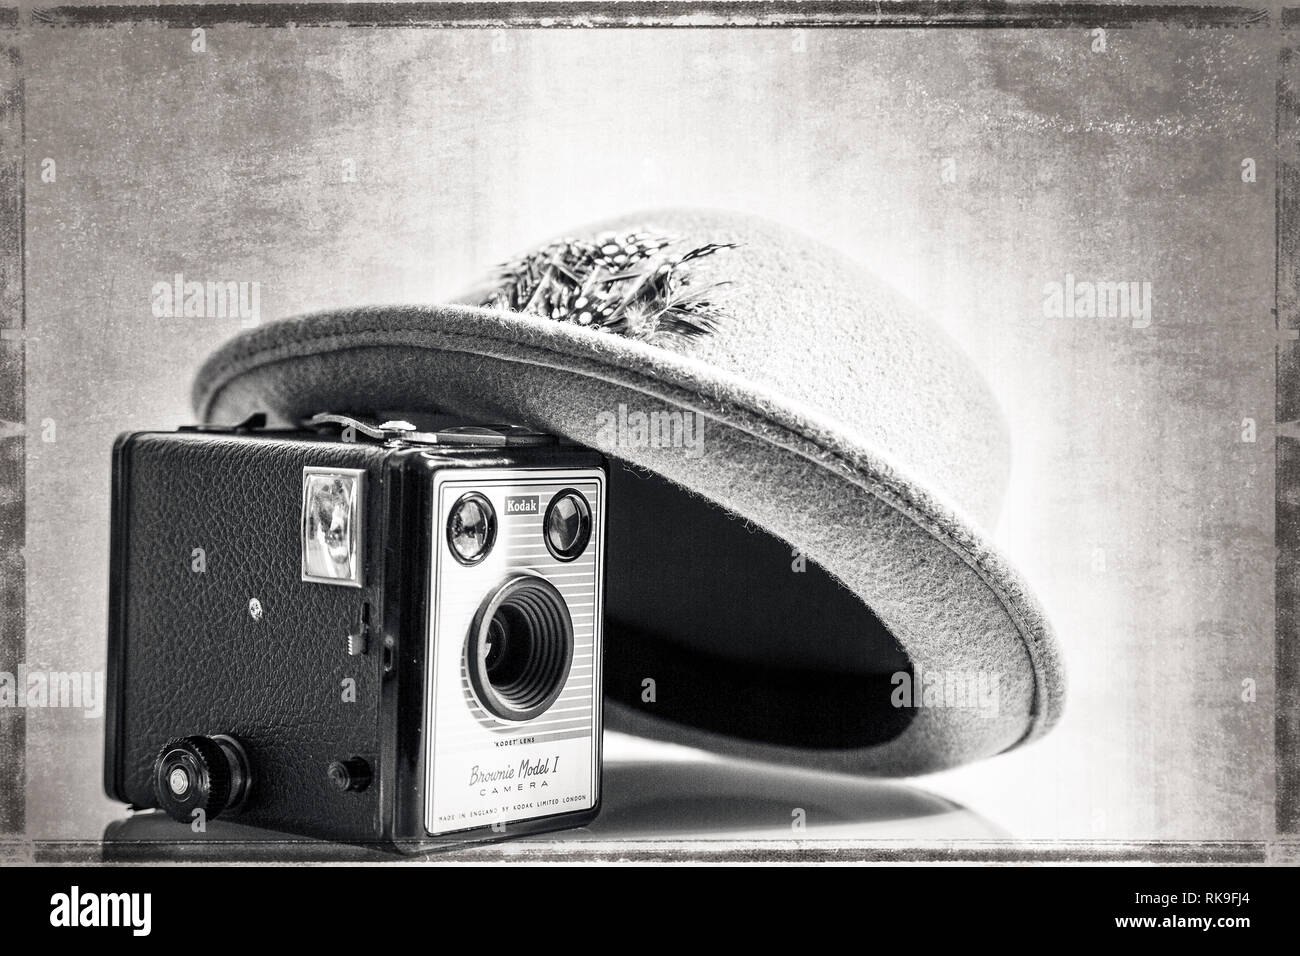 Black & white close up of 1950's Fedora hat leaning artistically on vintage Kodak Box Brownie camera (Model 1) of same period. Aged effect background. - Stock Image